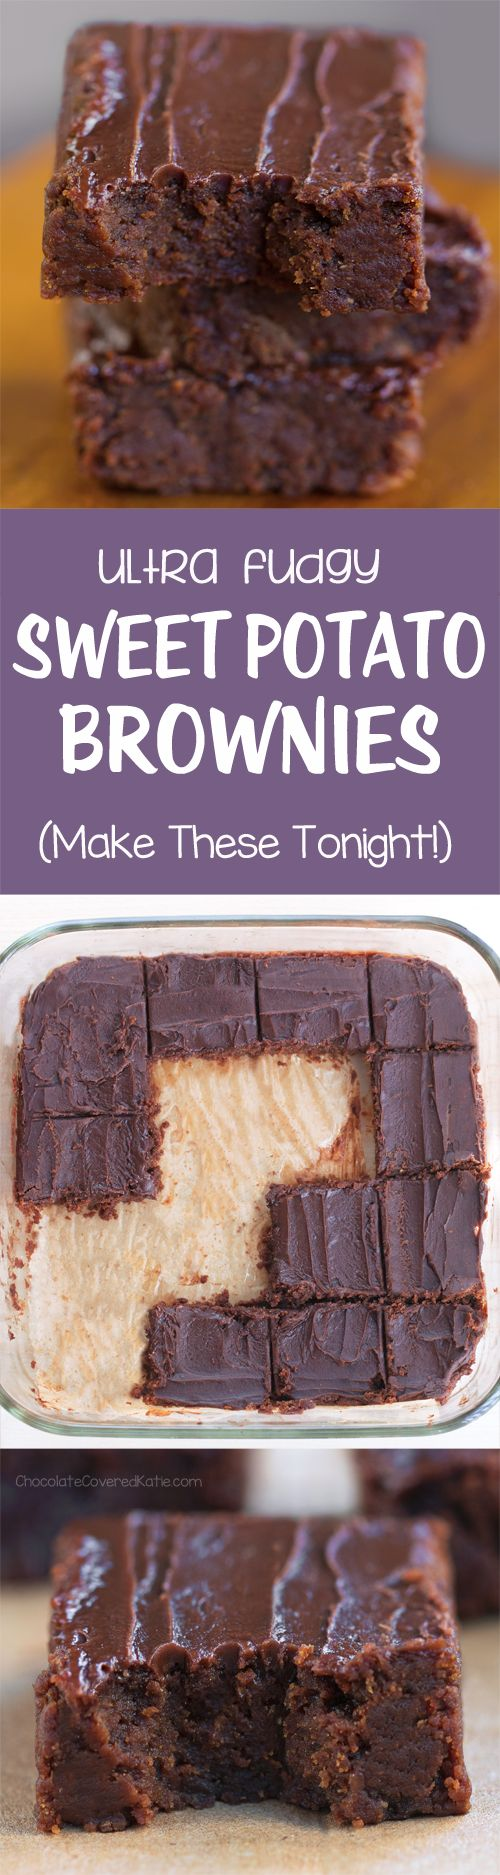 I was shocked at how good these turned out! The sweet potato brownies are amazing!